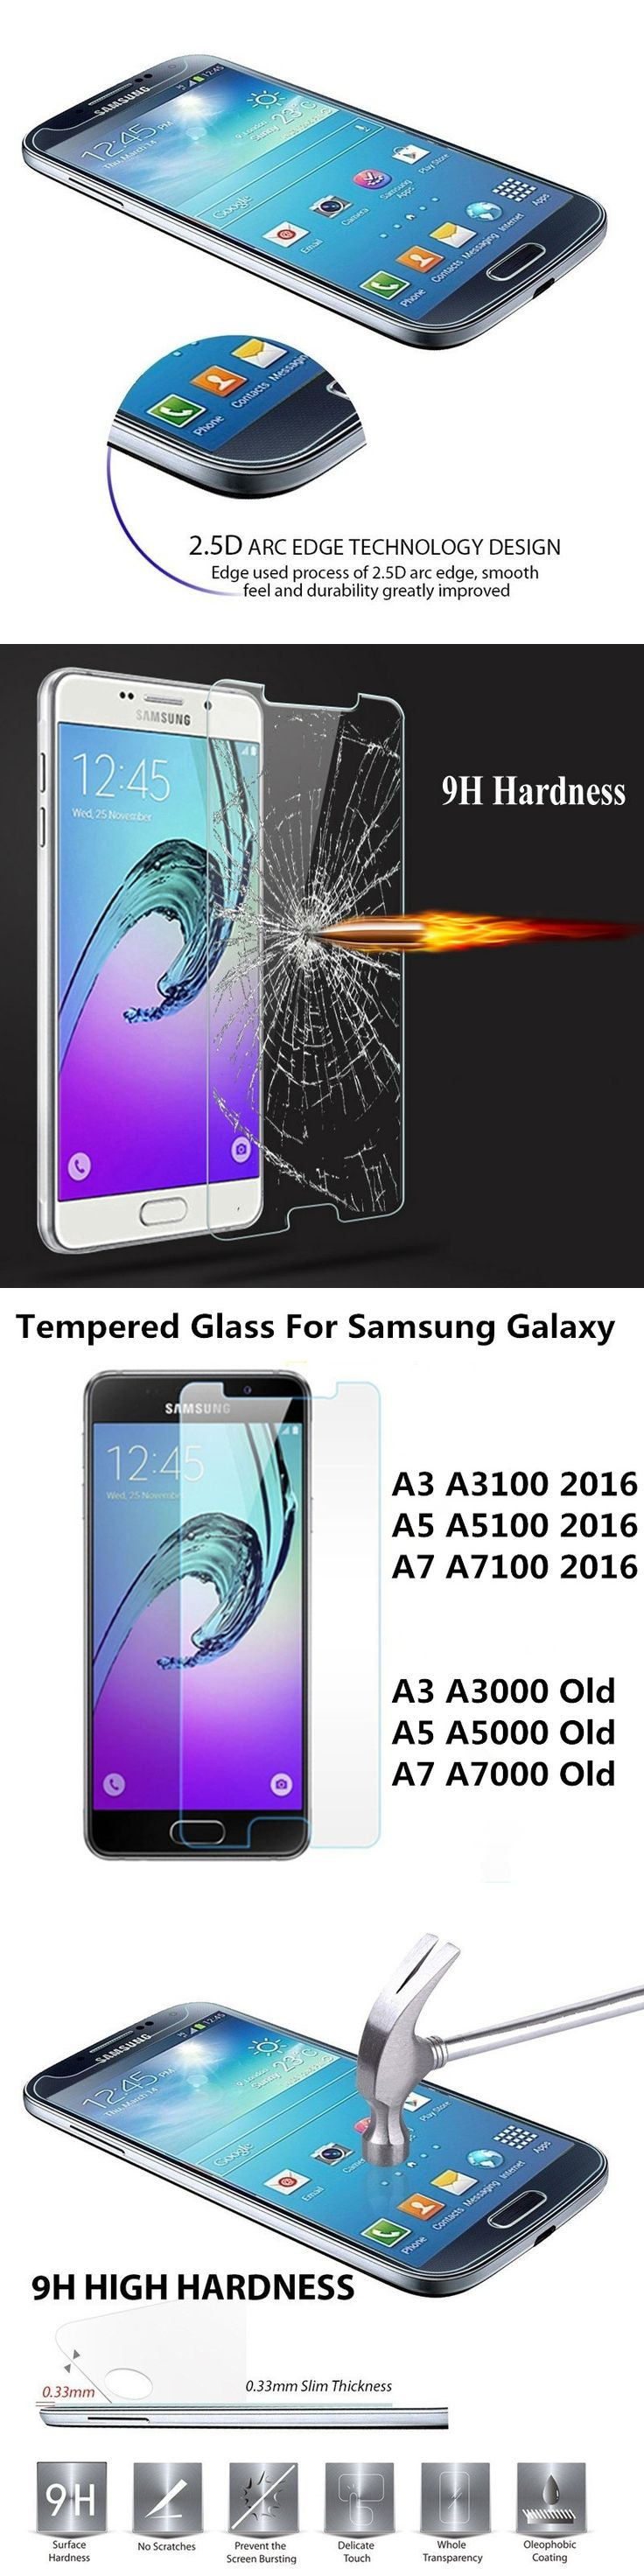 Explosion Proof Premium Tempered Glass For Samsung Galaxy A3 A5 A7 J3 J5 J7 J1 2015 2016 J2 PRIME Film Screen Protector Guard